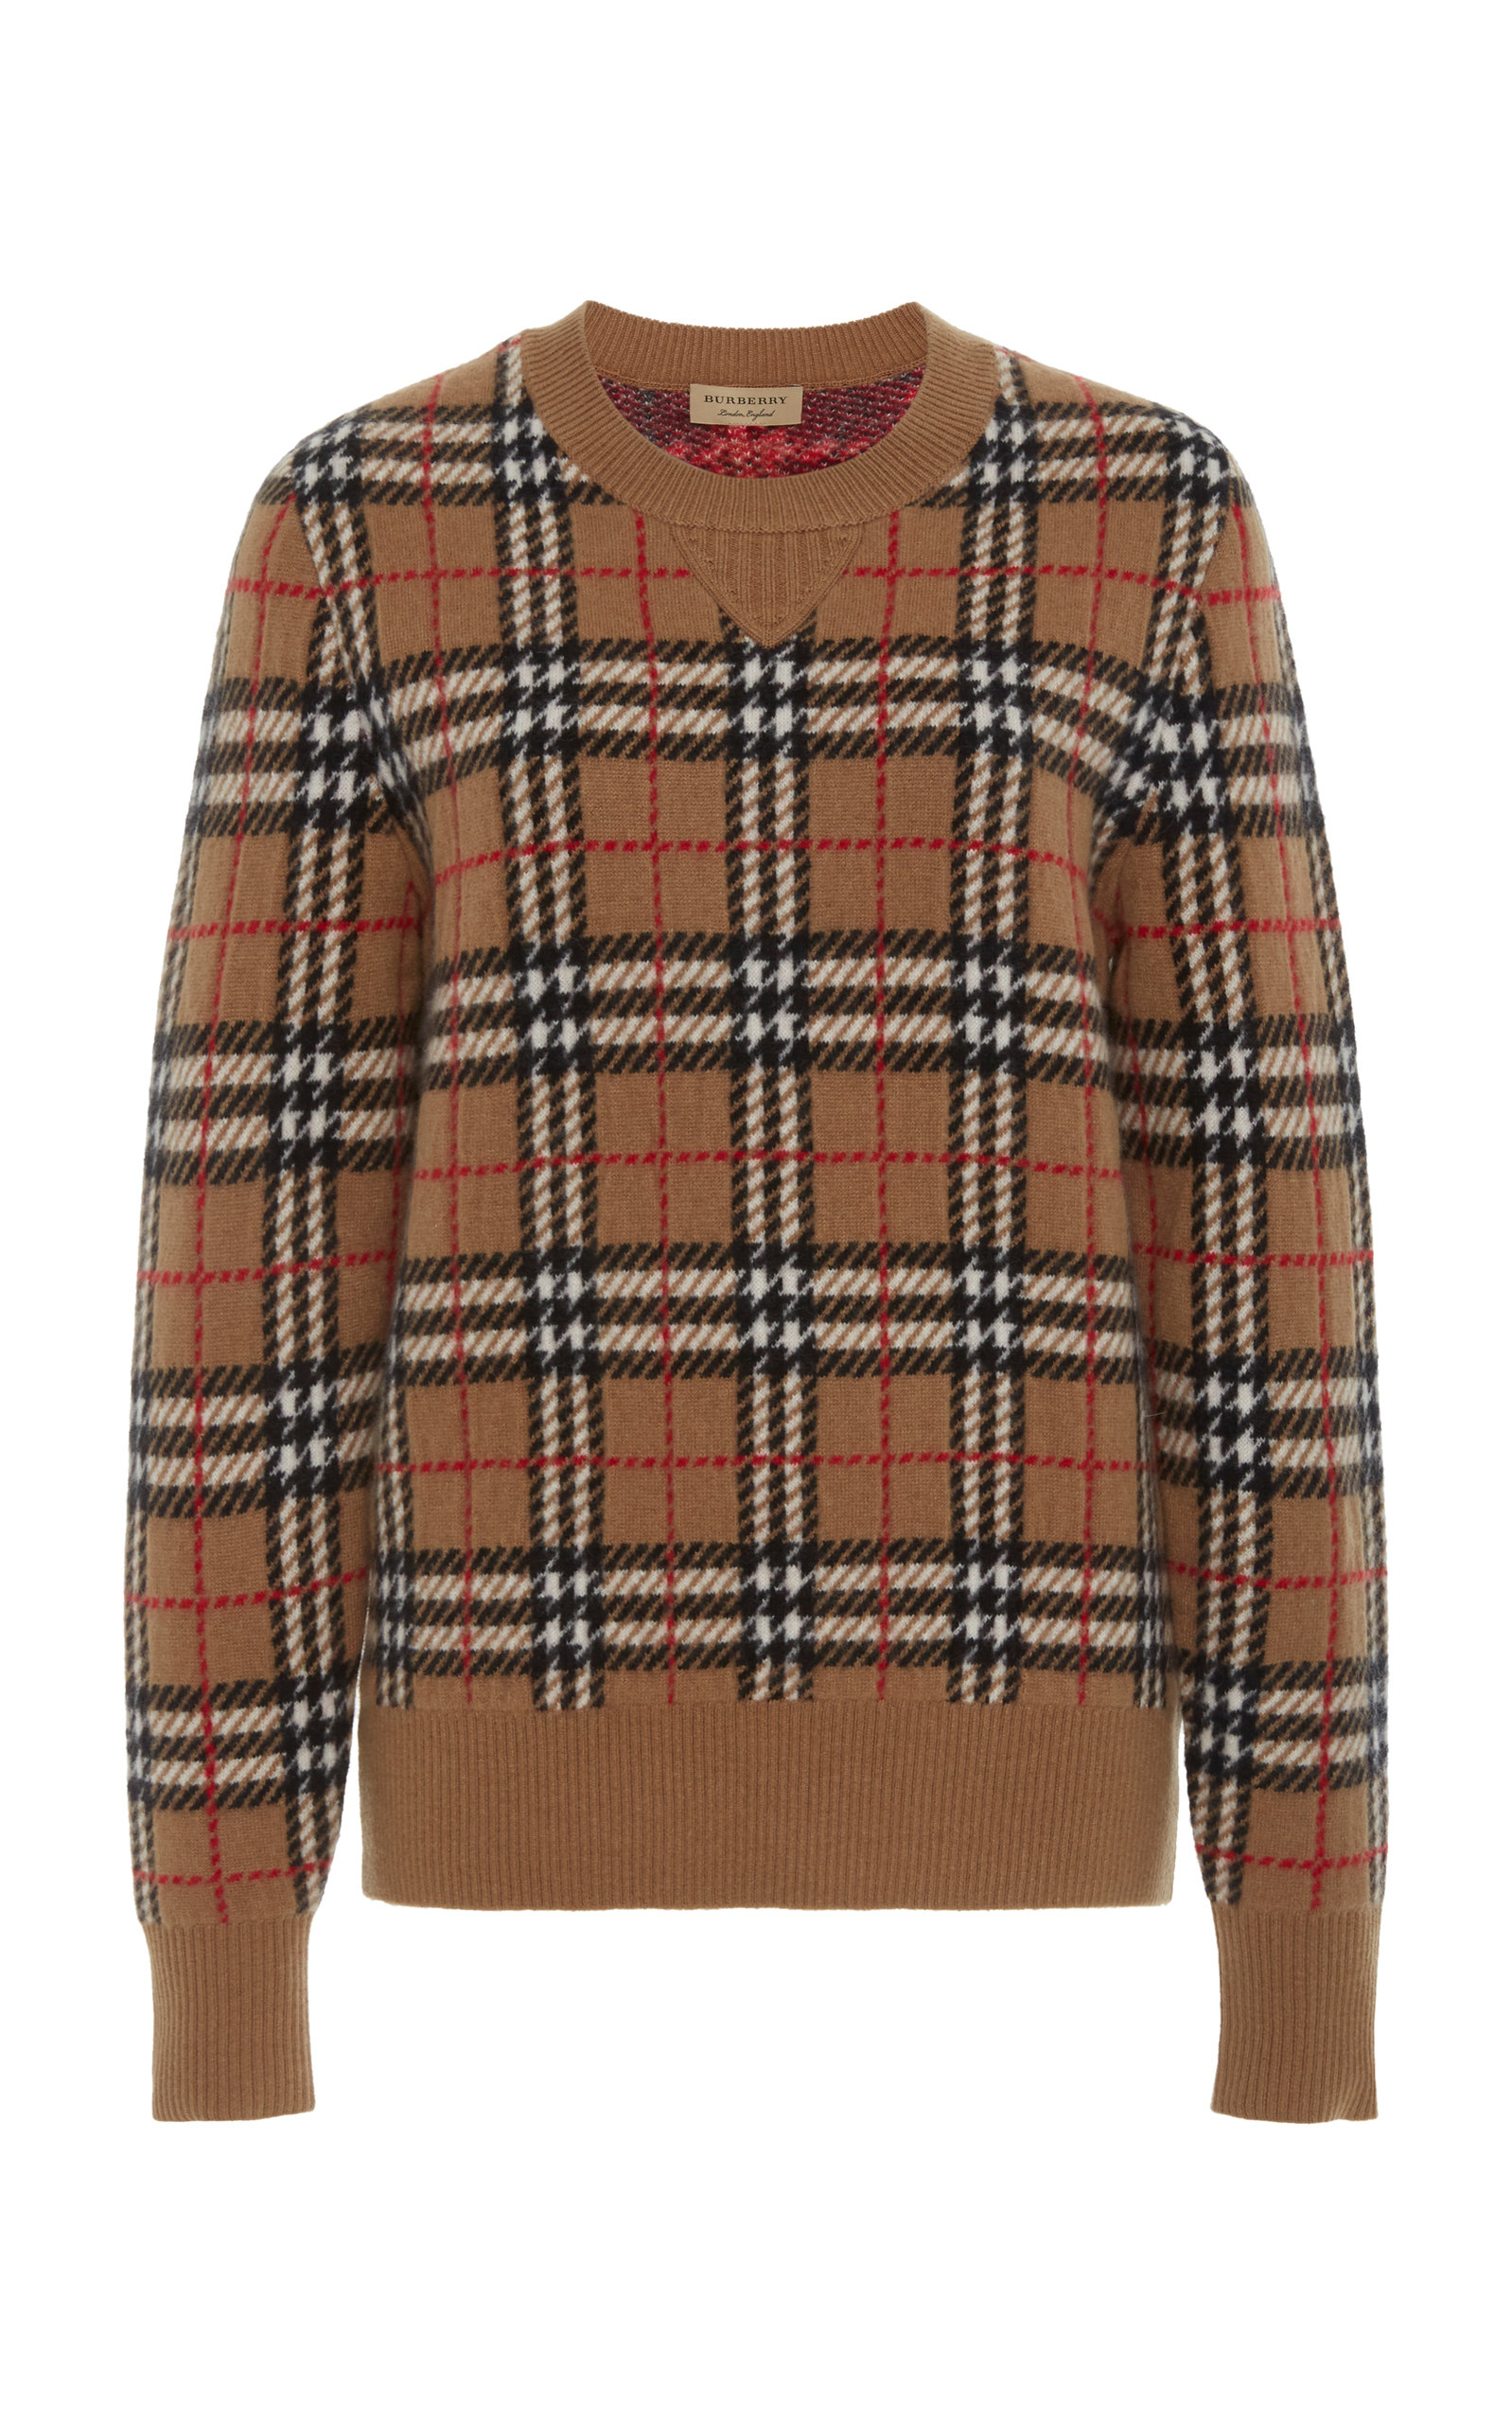 d293a64fe8d731 BurberryBanbury Checked Cashmere Sweater. CLOSE. Loading